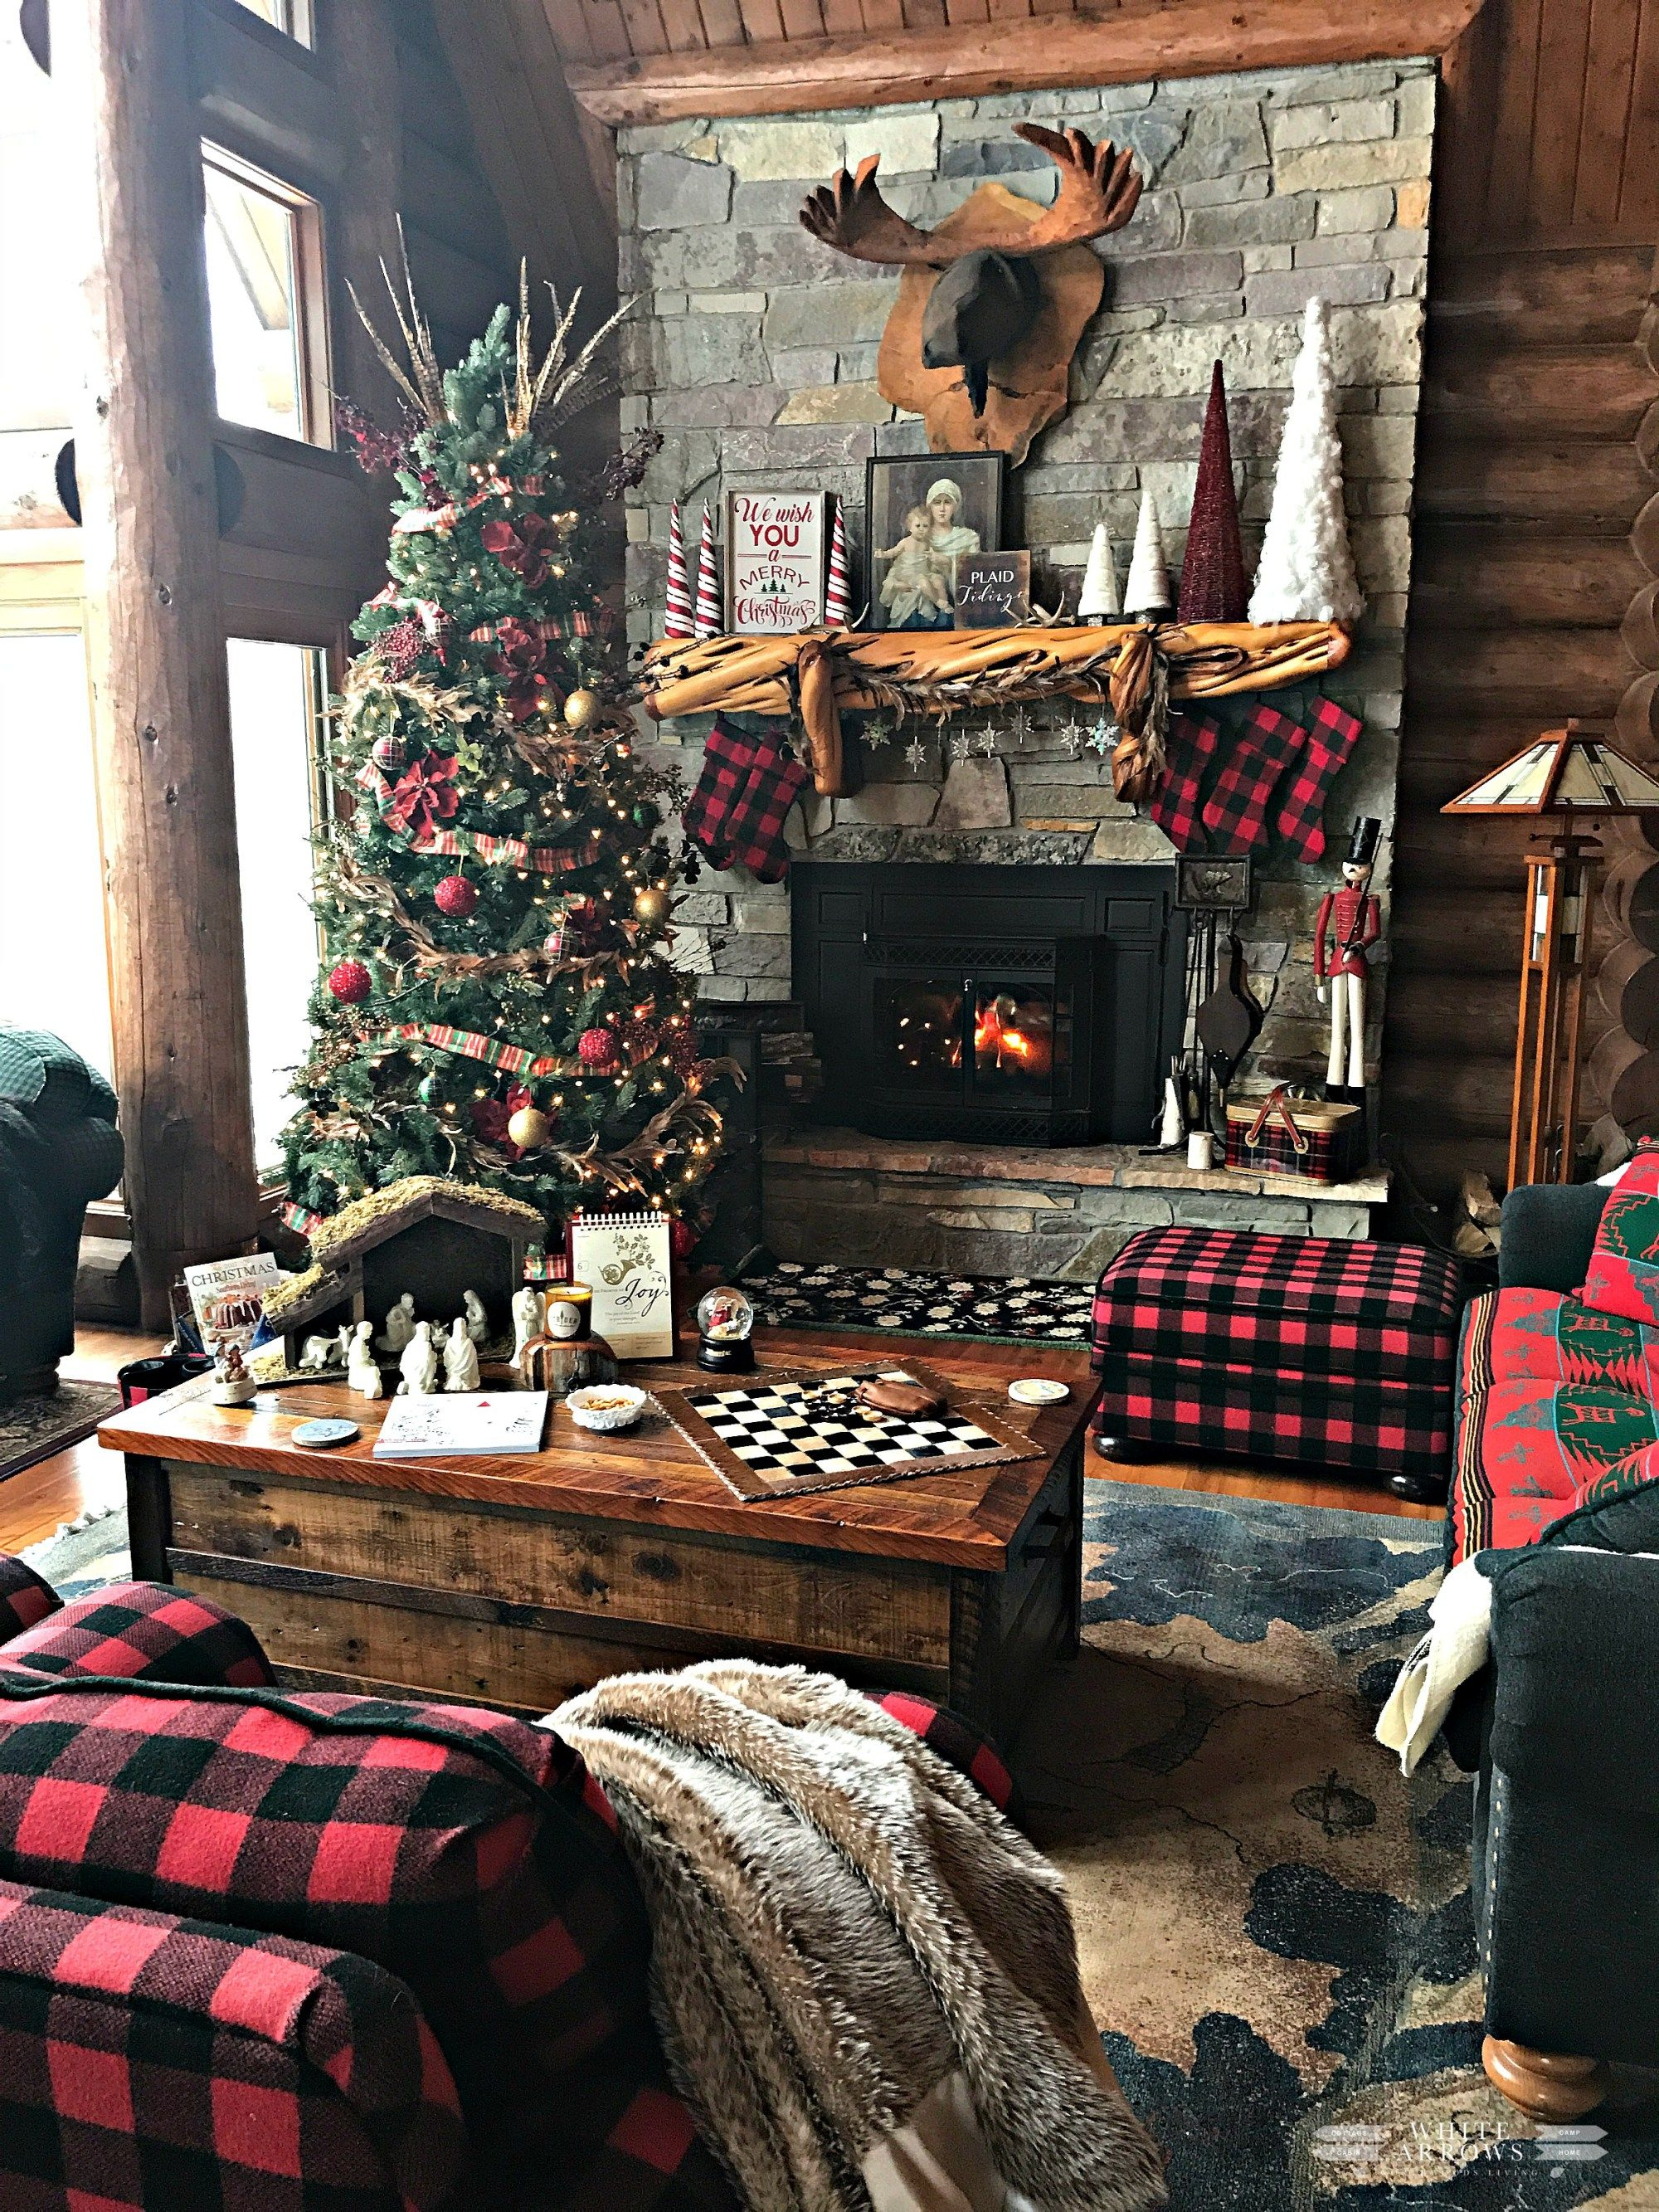 Christmas Mantle Buffalo Plaid Stockings And Rustic Decor Cabin Christmas Decor Christmas Mantel Decorations Cabin Christmas